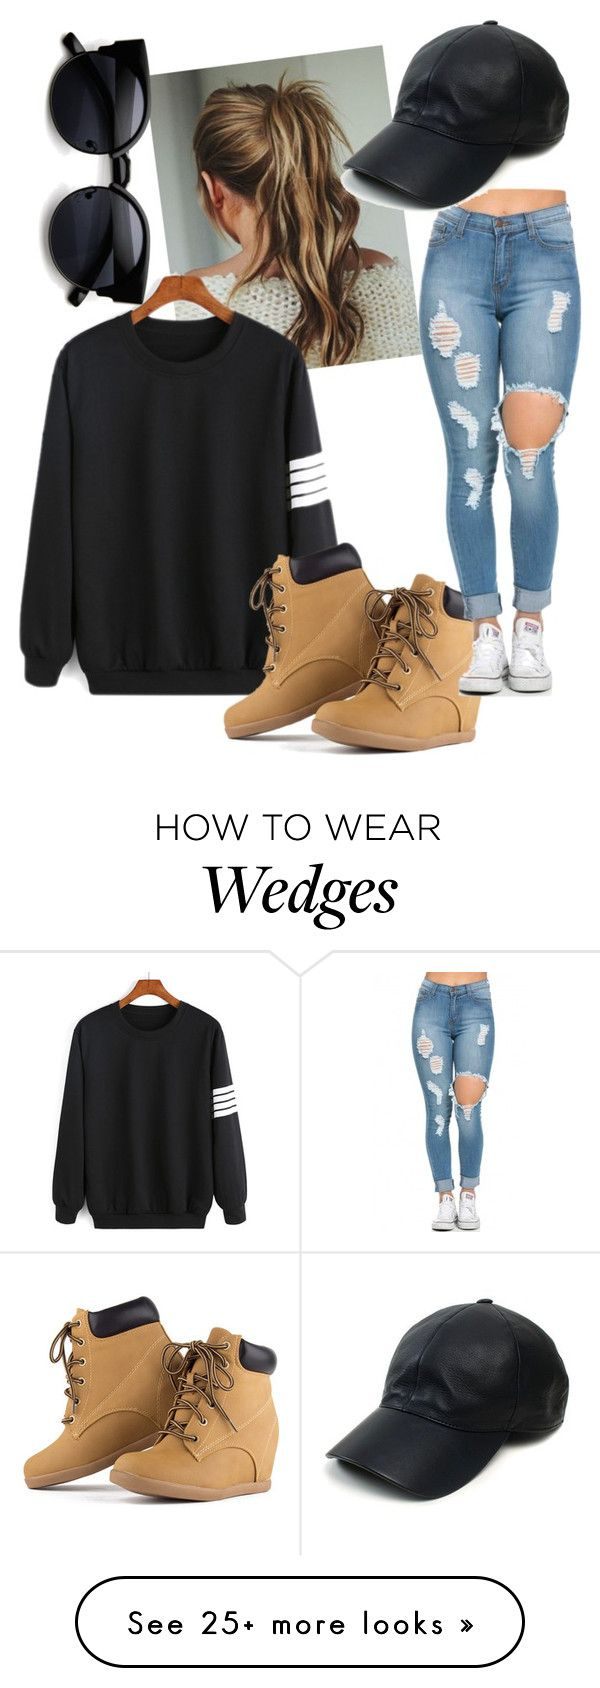 """""""185"""" by ginette1999 on Polyvore featuring Vianel, women's clothing, women, female, woman, misses and juniors"""